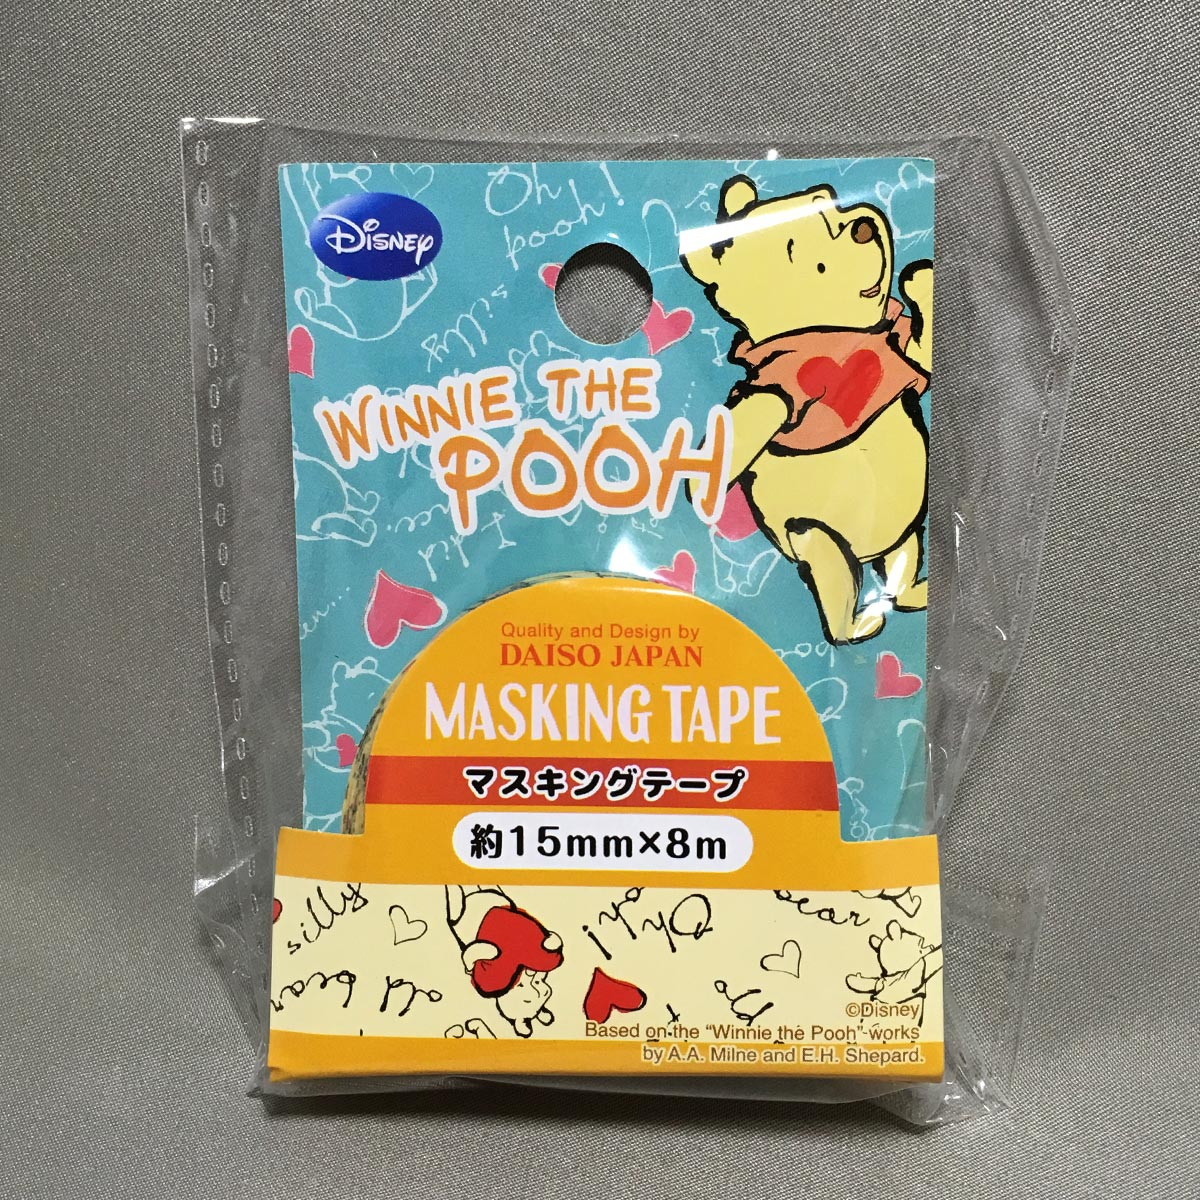 Winnie The Pooh Masking Tape - front packaging